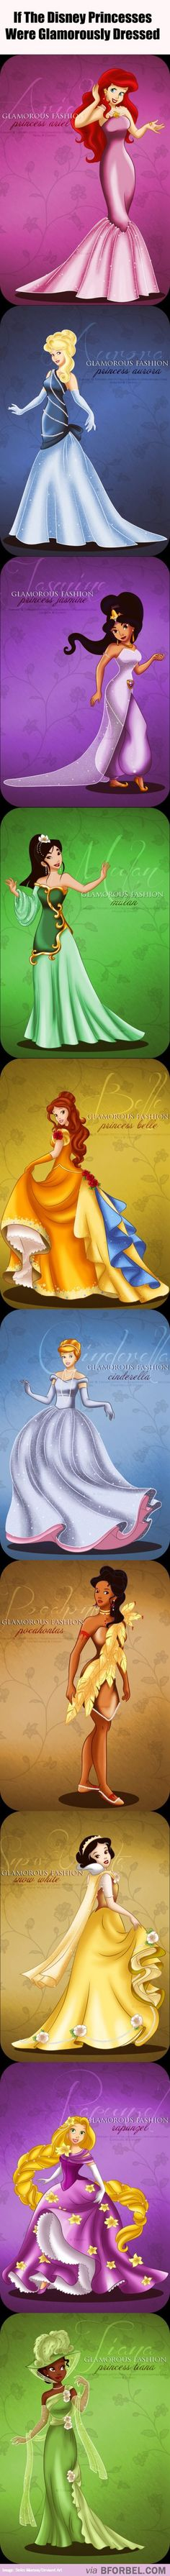 If the Disney Princesses were glamorously dressed